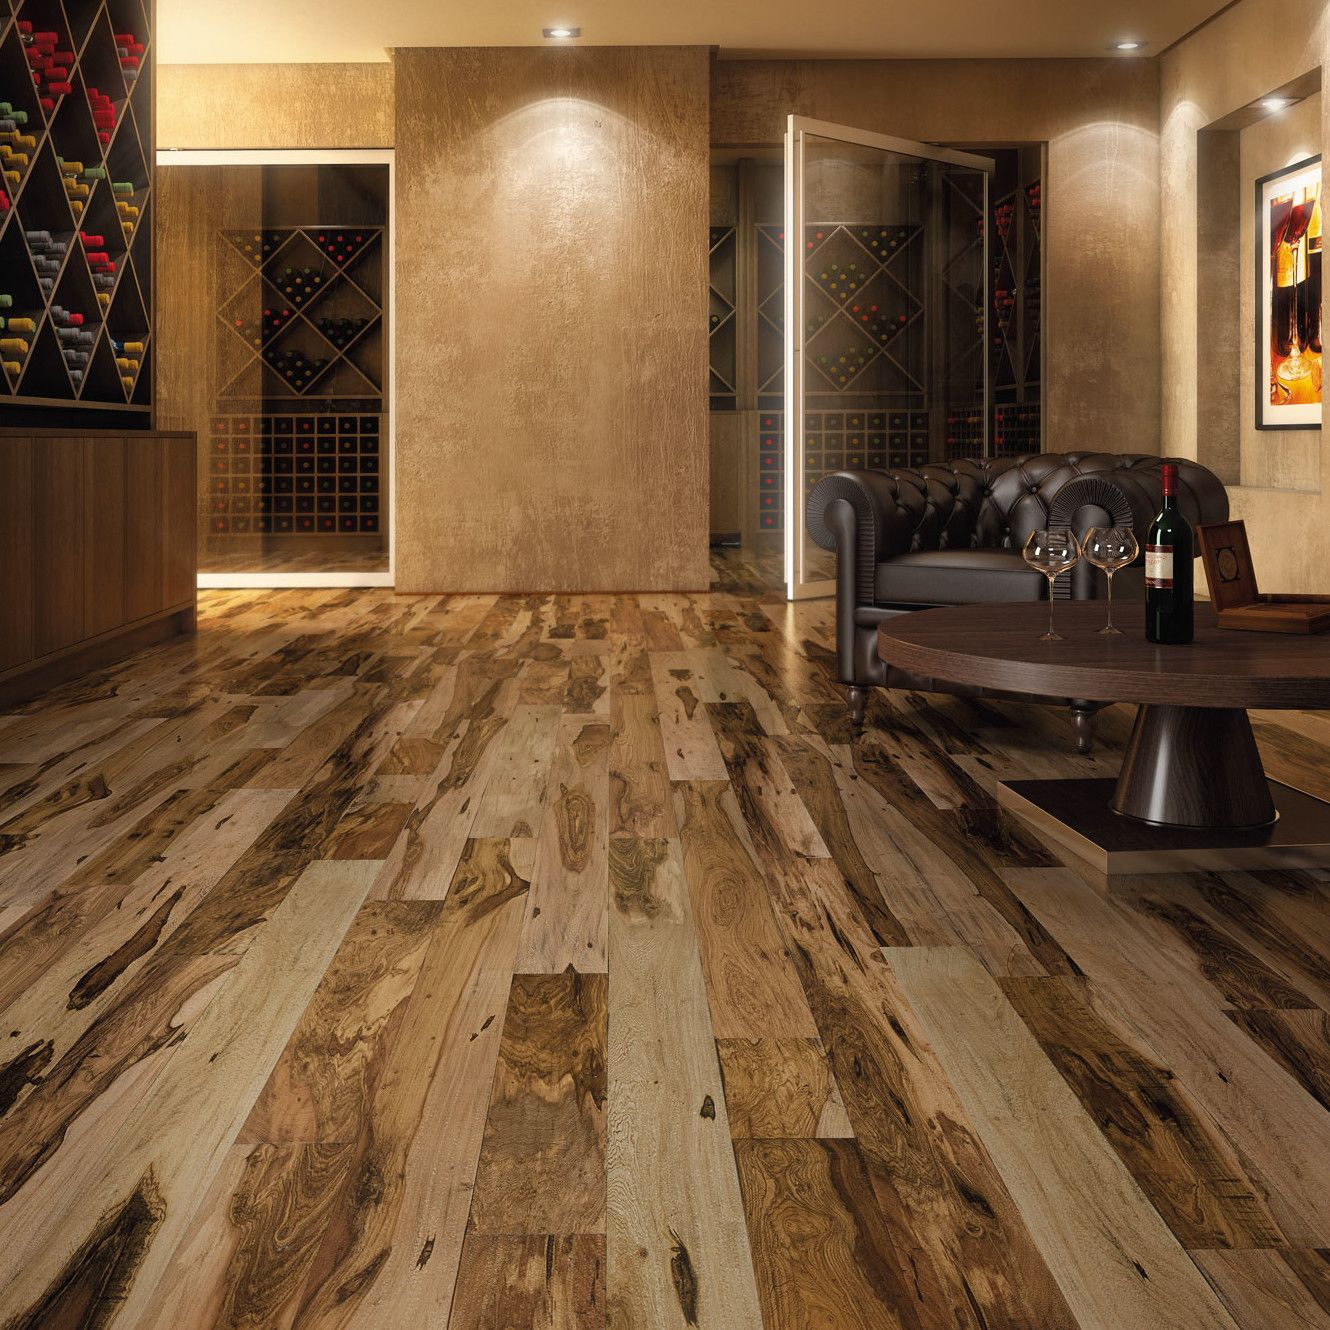 Brazilian Hardwood Flooring from Indus Parquet. This